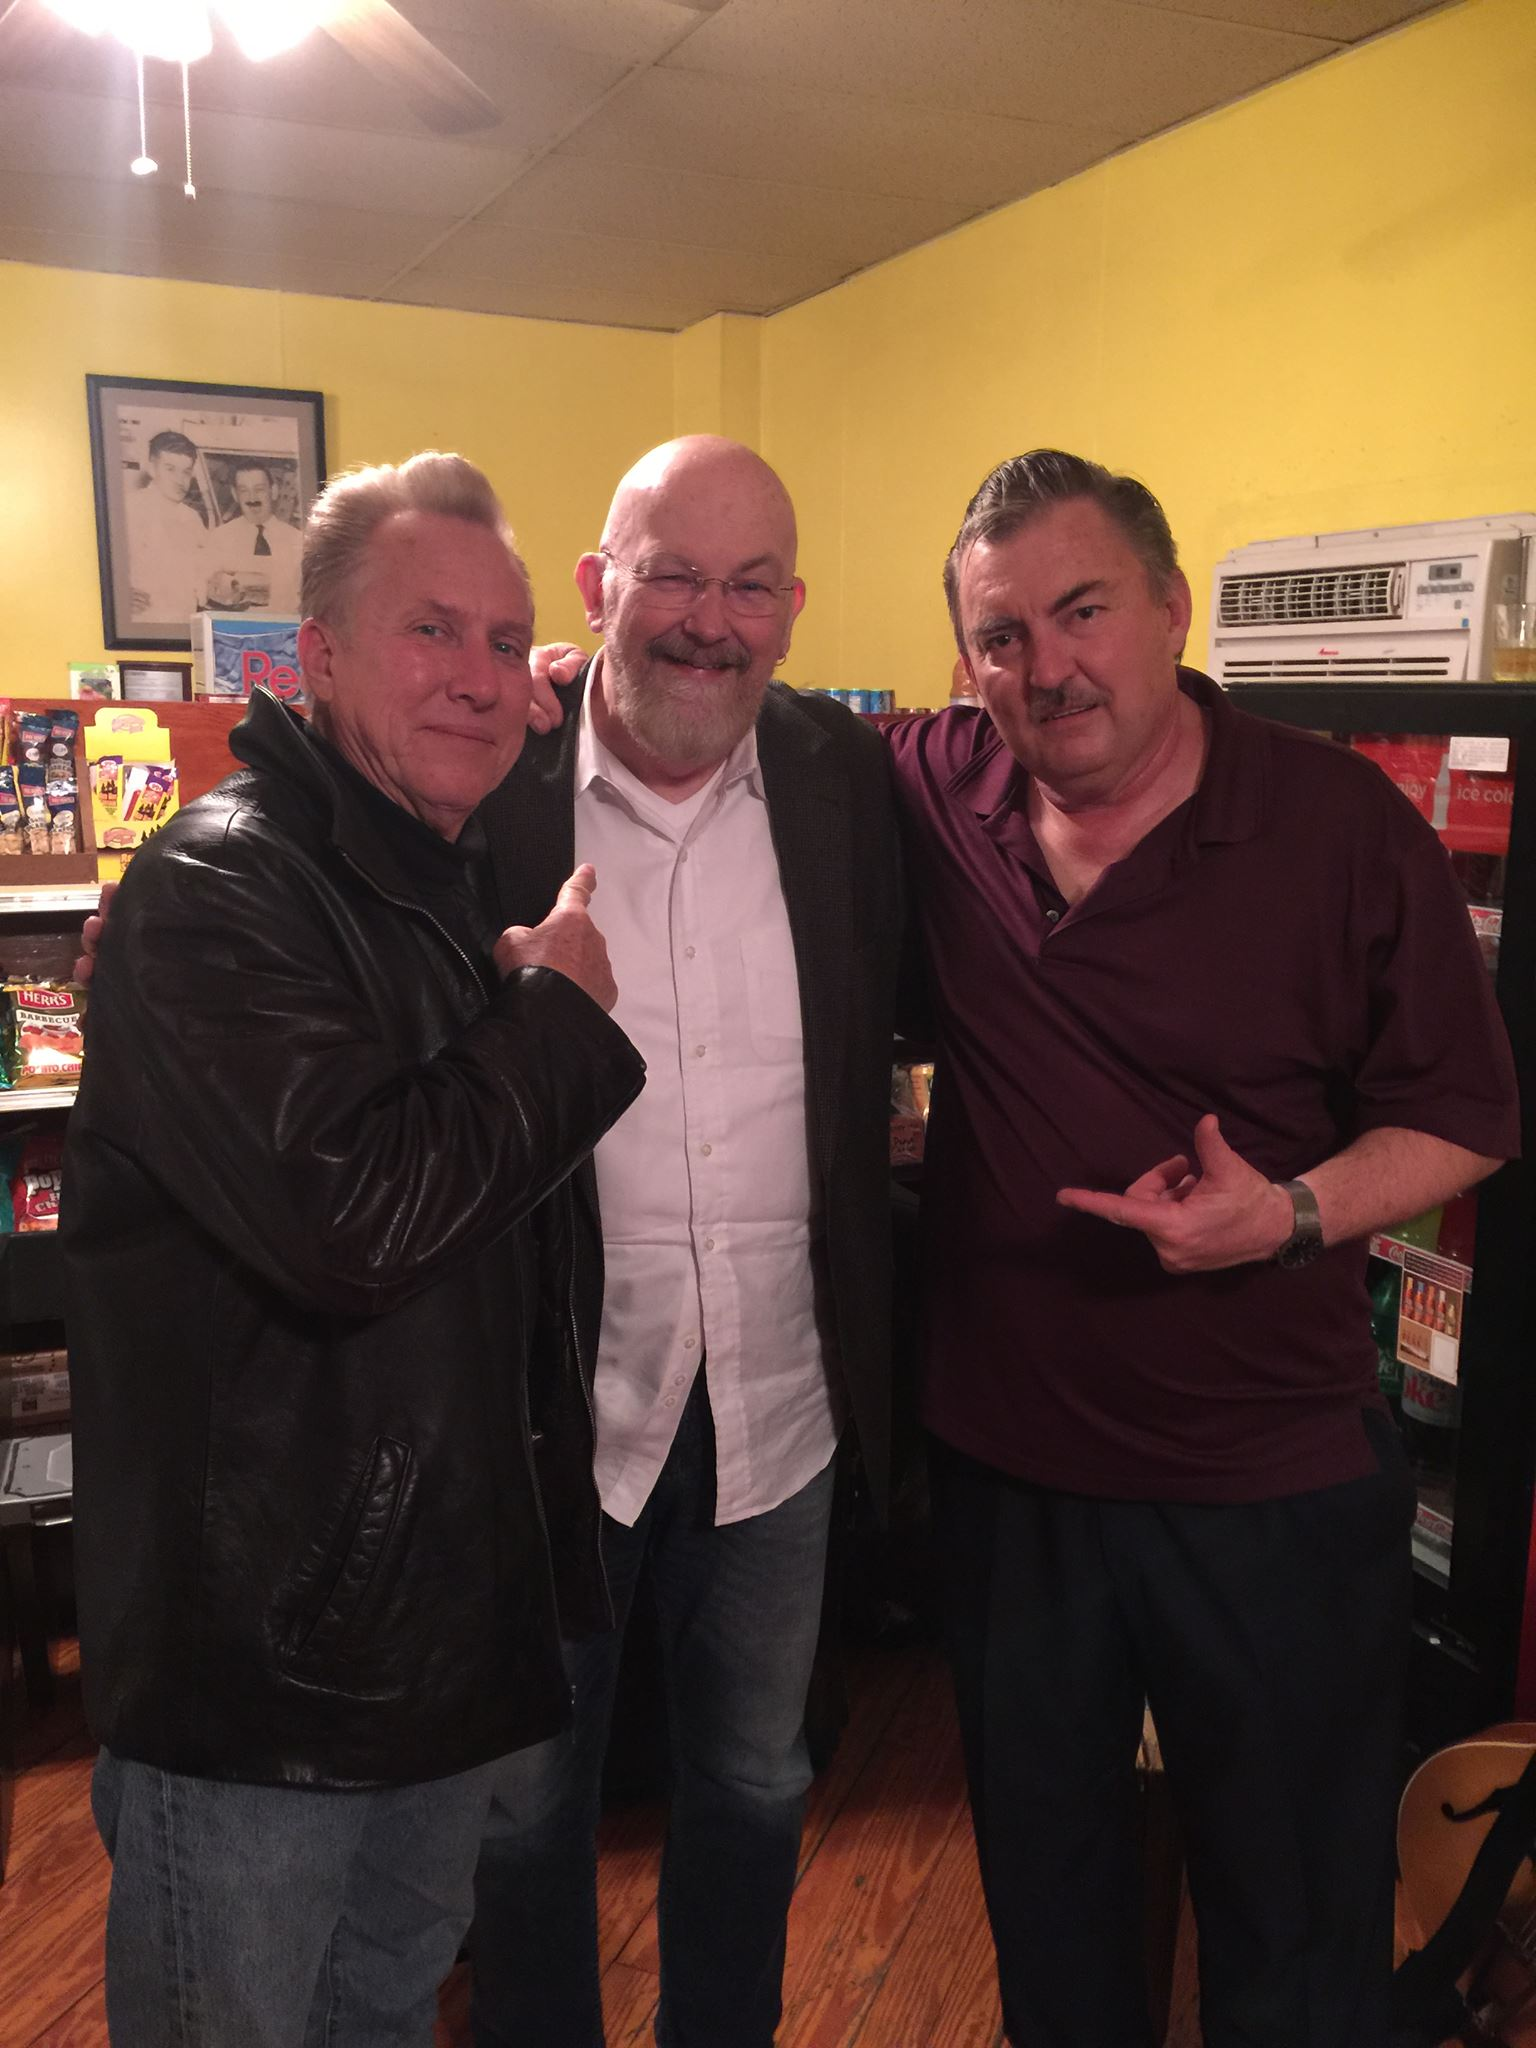 Anson Funderburgh, Dave Orban, and Little Charlie Baty at St. George's Country Store in Delaware...